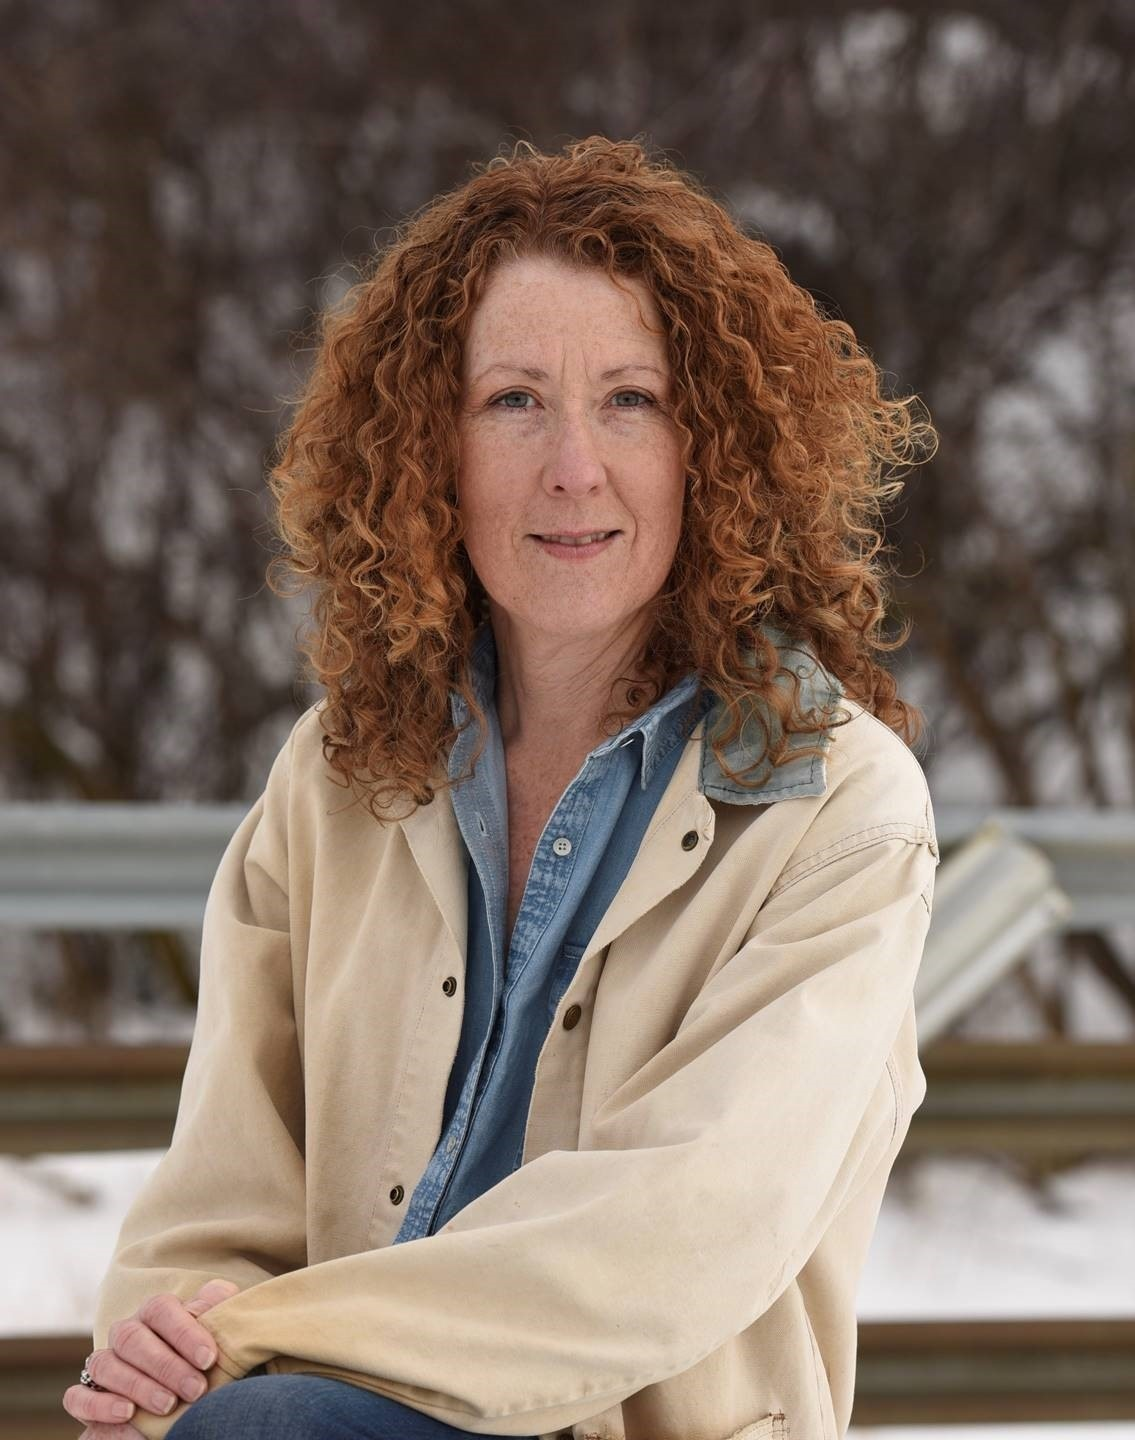 Conflicting stories emerge as Tracy Stone-Manning's nomination hangs in the balance